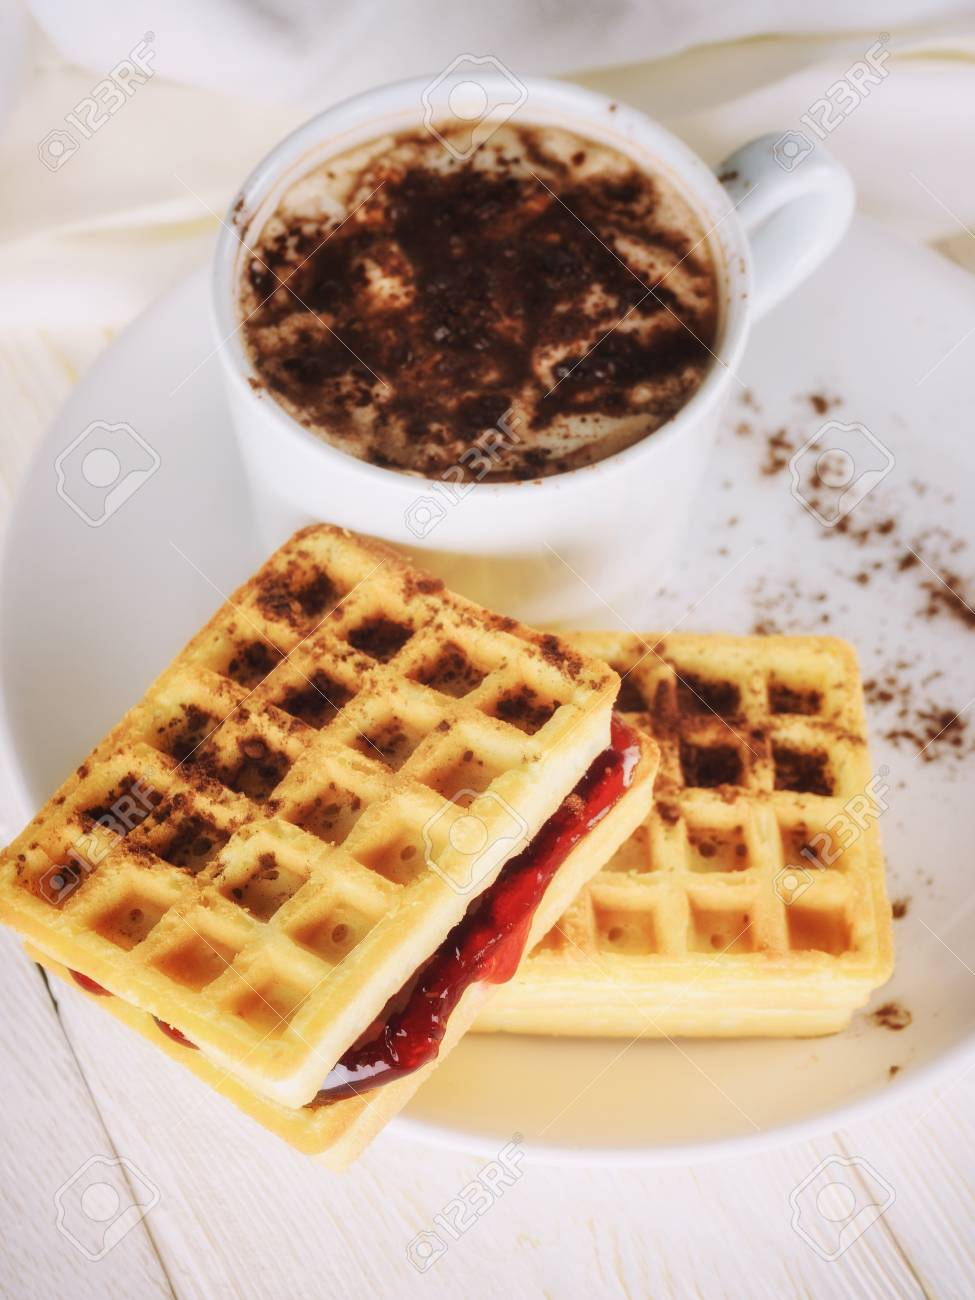 waffles with jam and cup cacao - 102961440